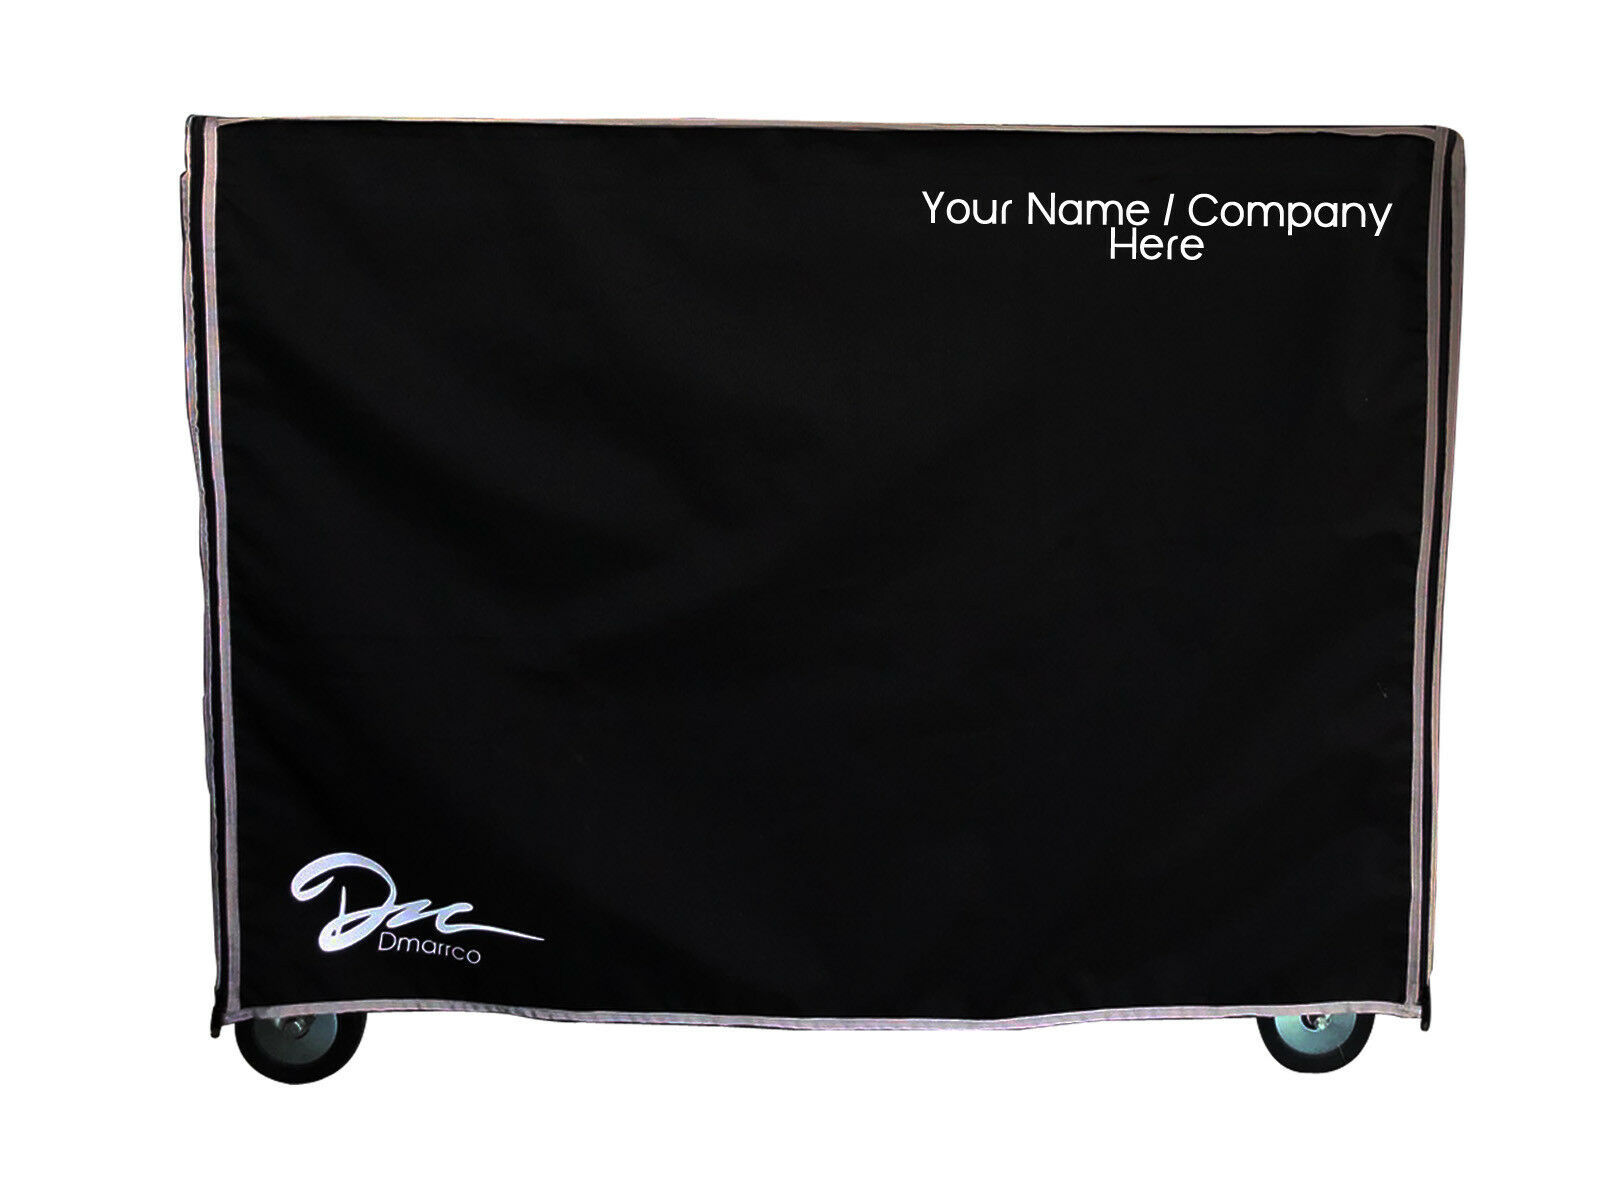 Tool Box Covers >> Details About Custom Tool Box Cover By Dmarrco Fits Husky Heavy Duty 72 W X 24 D 15 Drawers